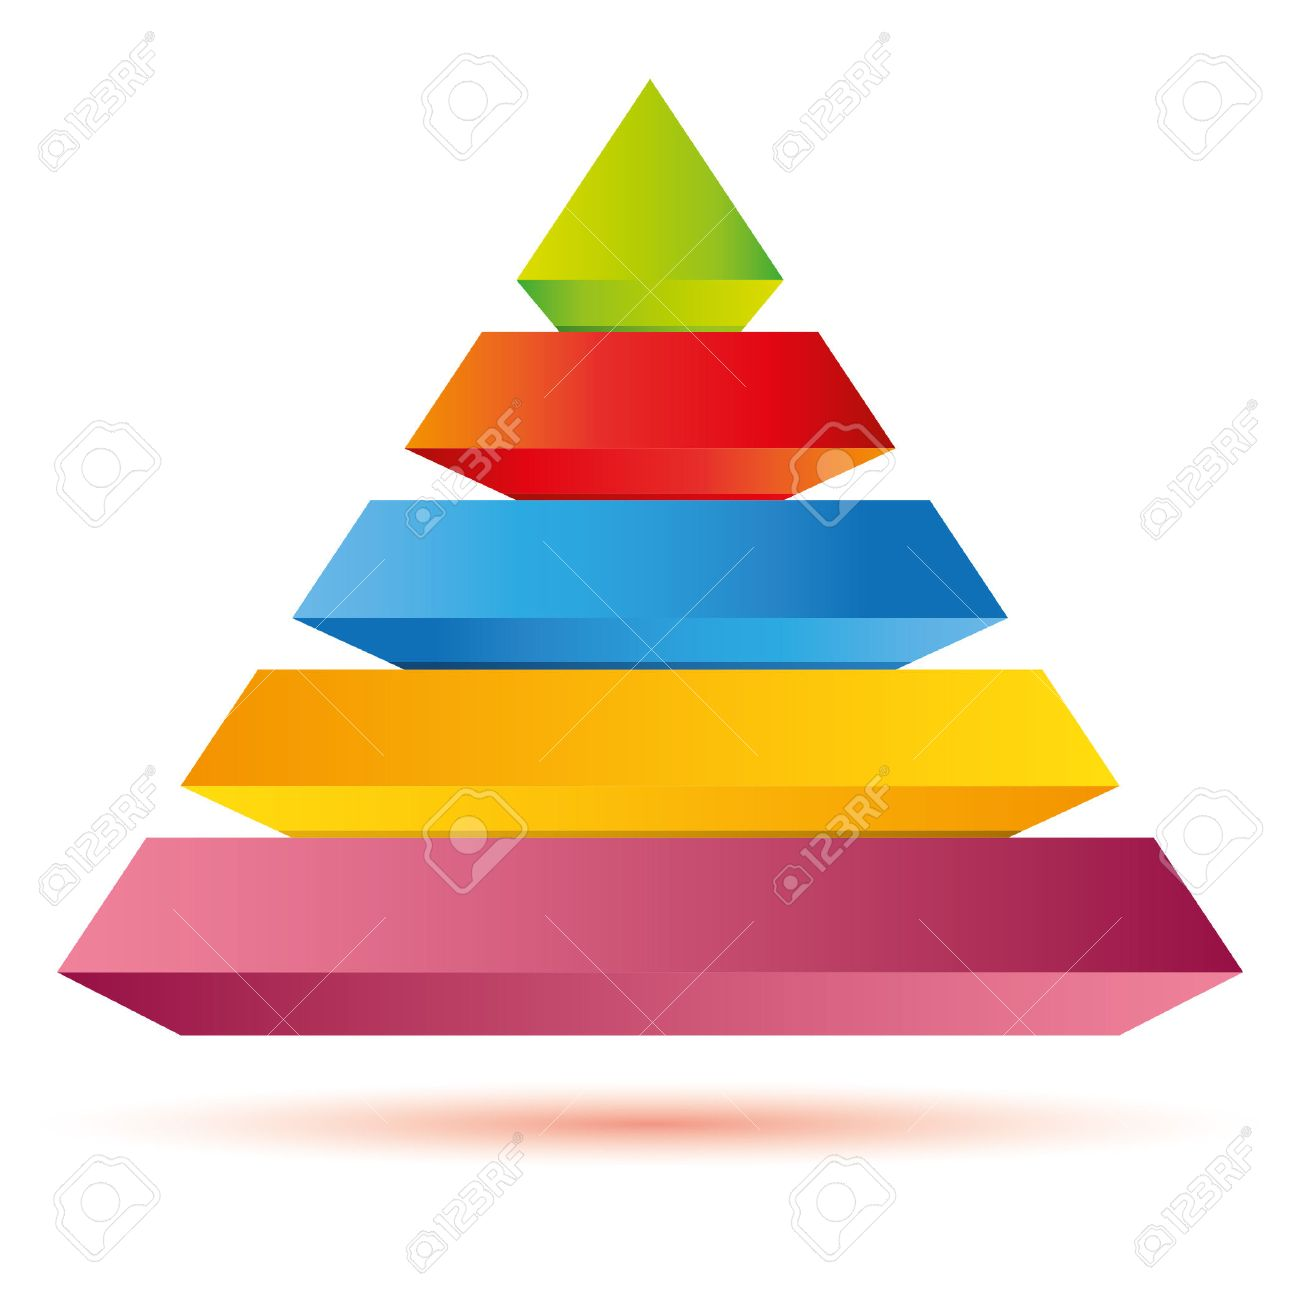 Pyramid Diagram, Business Template Royalty Free Cliparts, Vectors ...